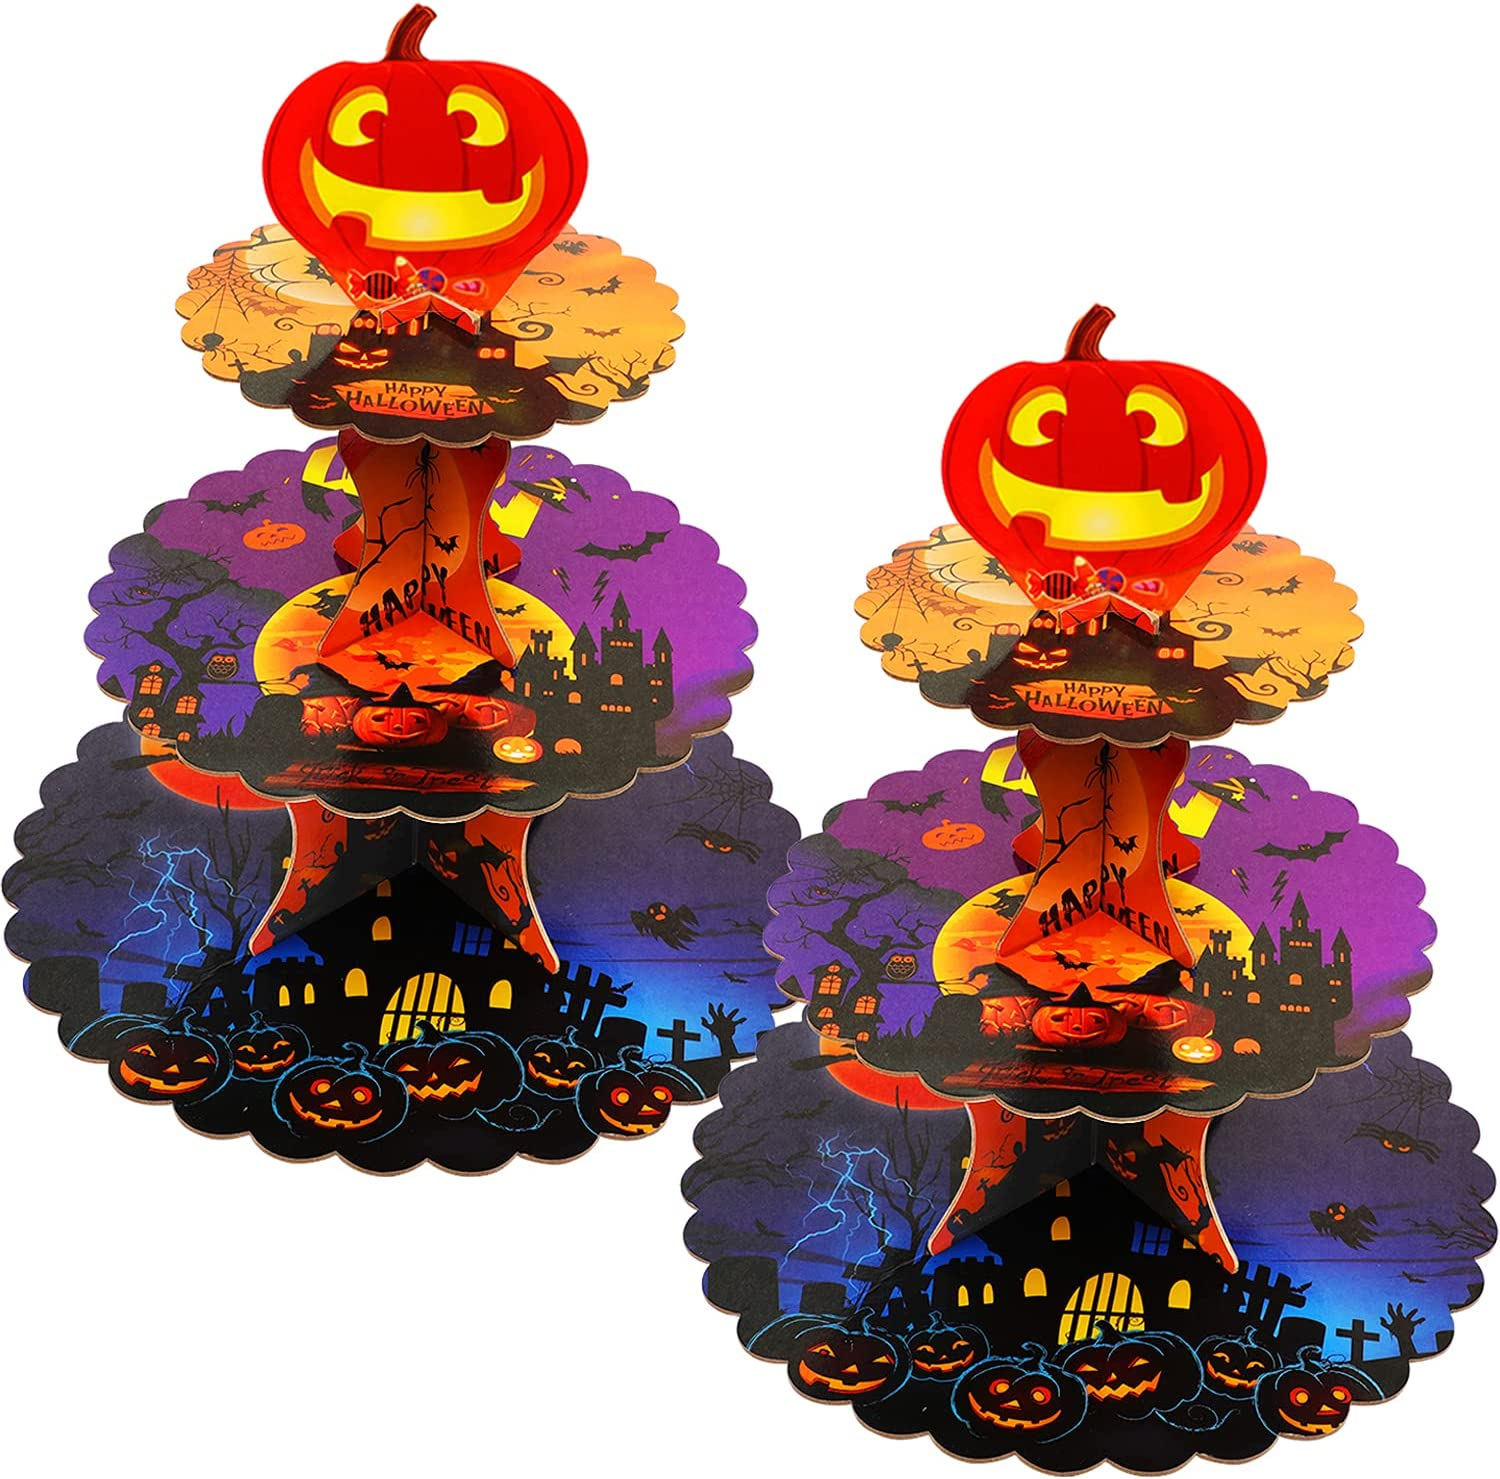 Sawowkuya 2-Set 3-Tier Cardboard Cupcake Stand/Tower,Round Dessert Tree Tower for 24 Cupcakes, Universal for Halloween Themed Party